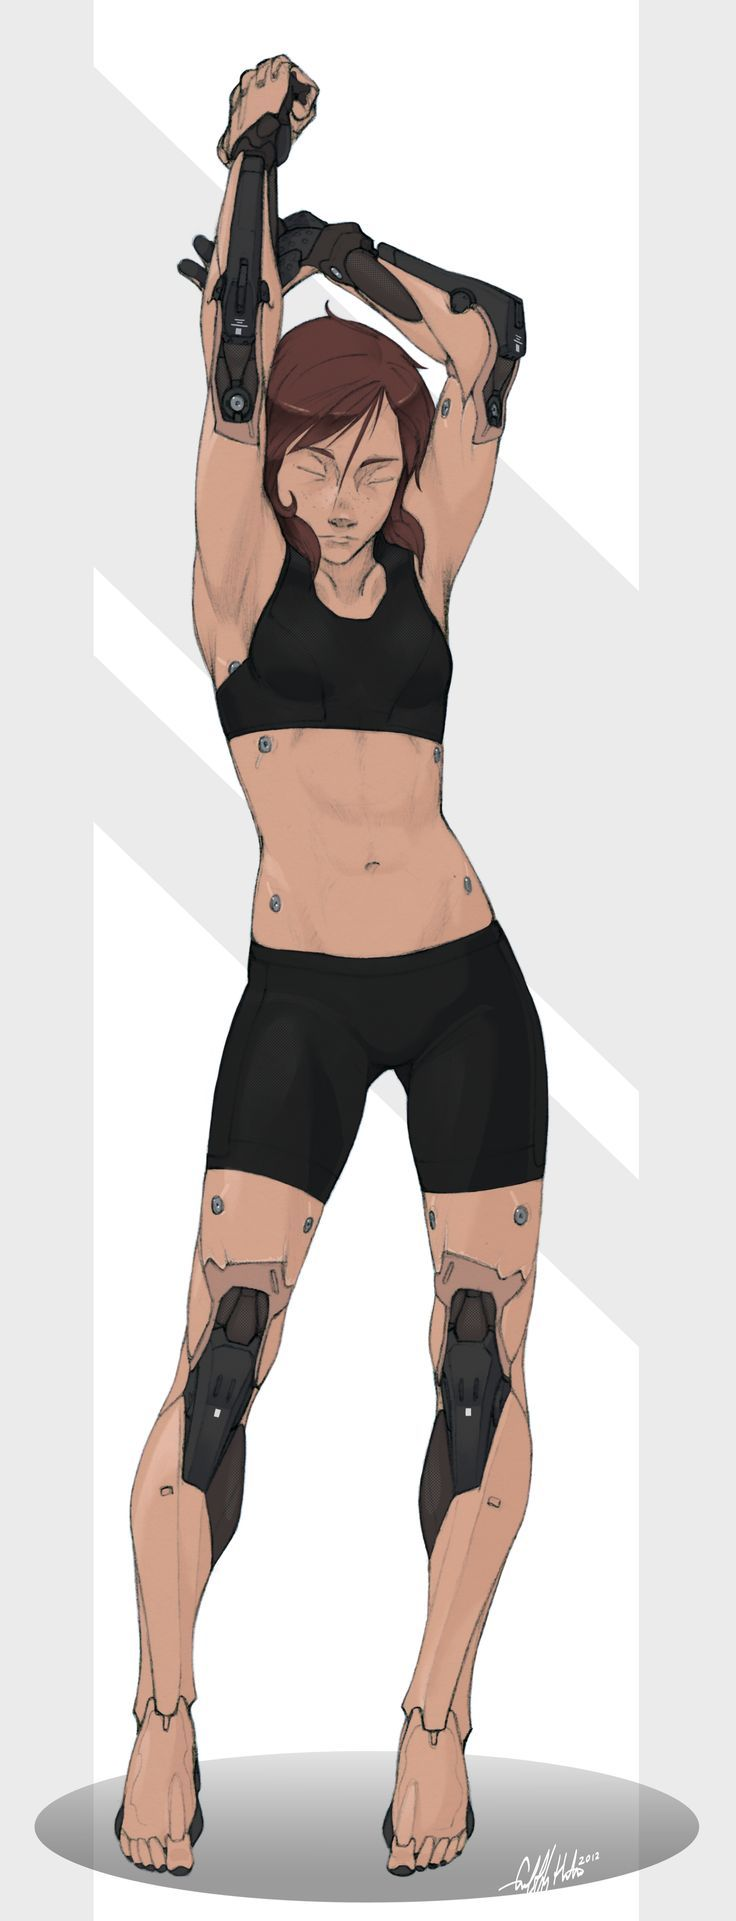 """""""Reina- Prosthetics Studies"""" by Tekka-Croe. Looks like this chick would fit right at home in a Deus Ex or Cyberpunk game. // DeviantART:"""